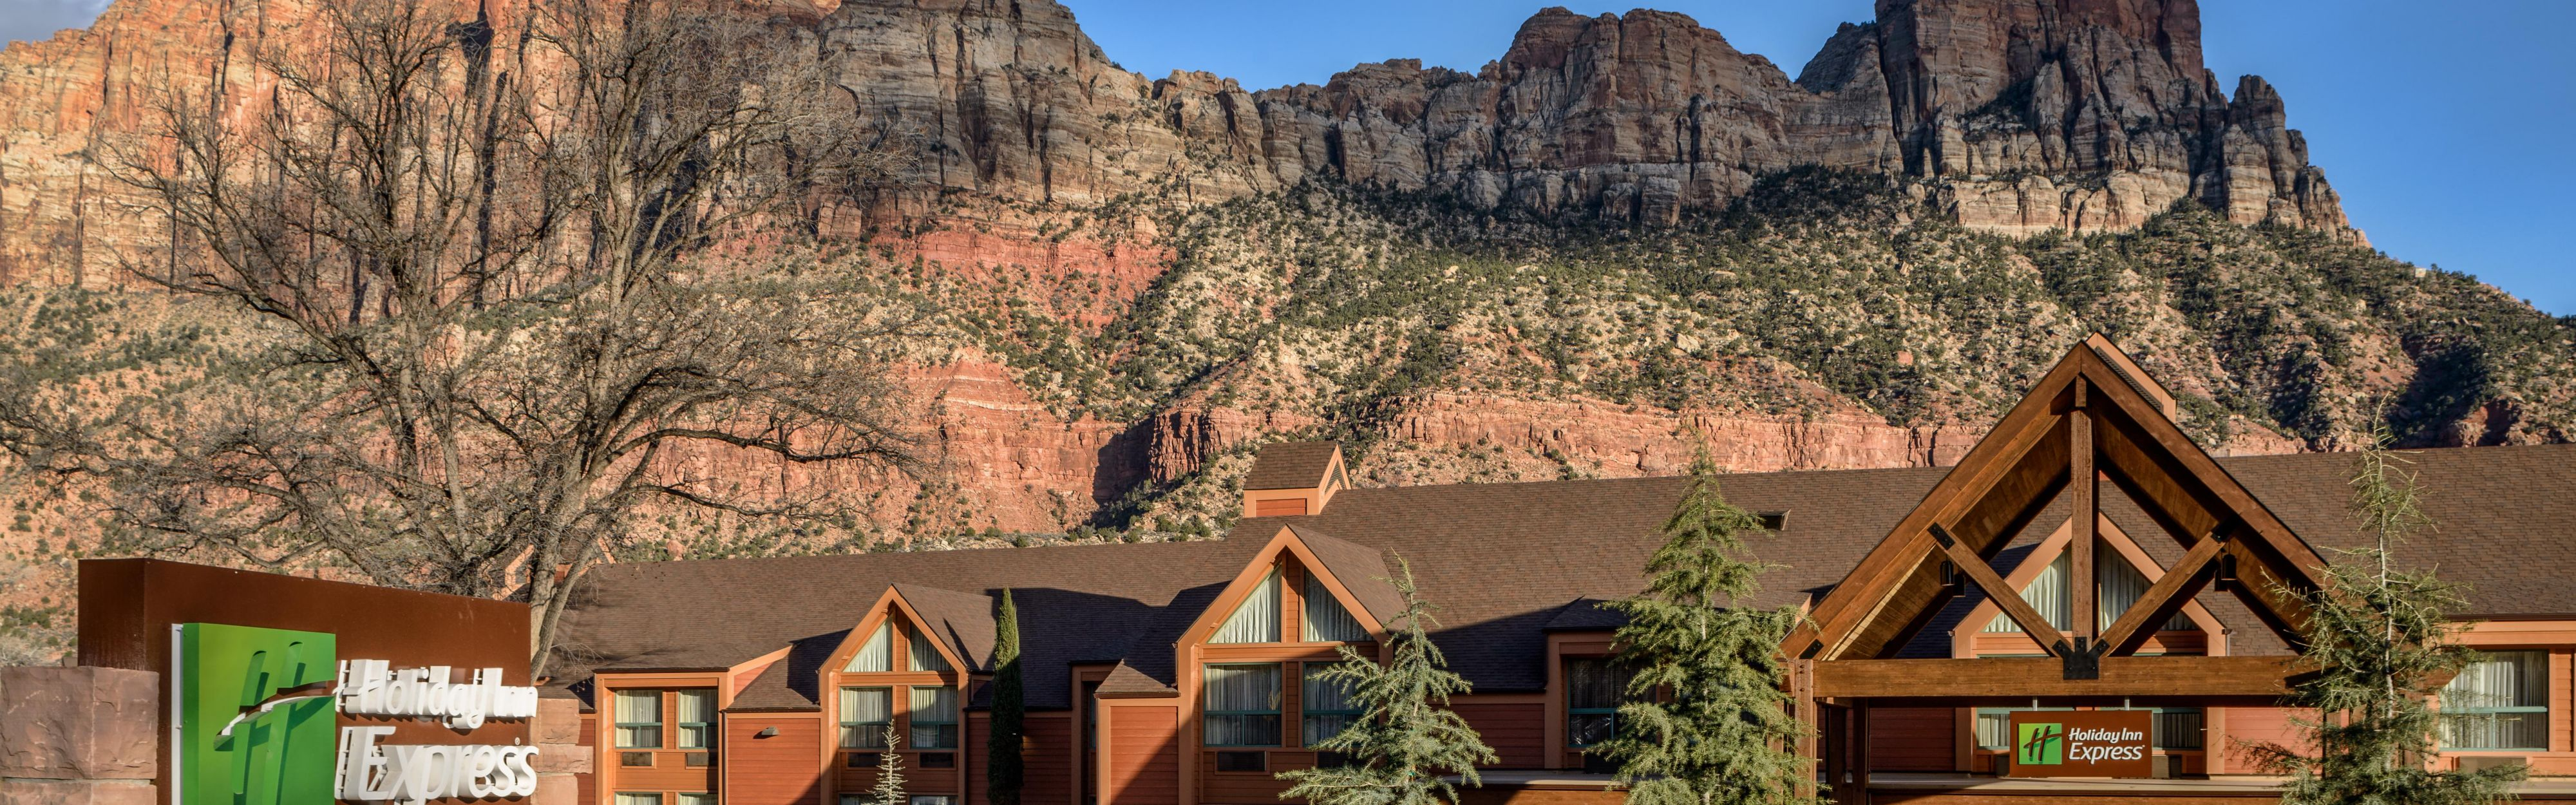 Holiday Inn Express Springdale - Zion Natl Pk Area image 0